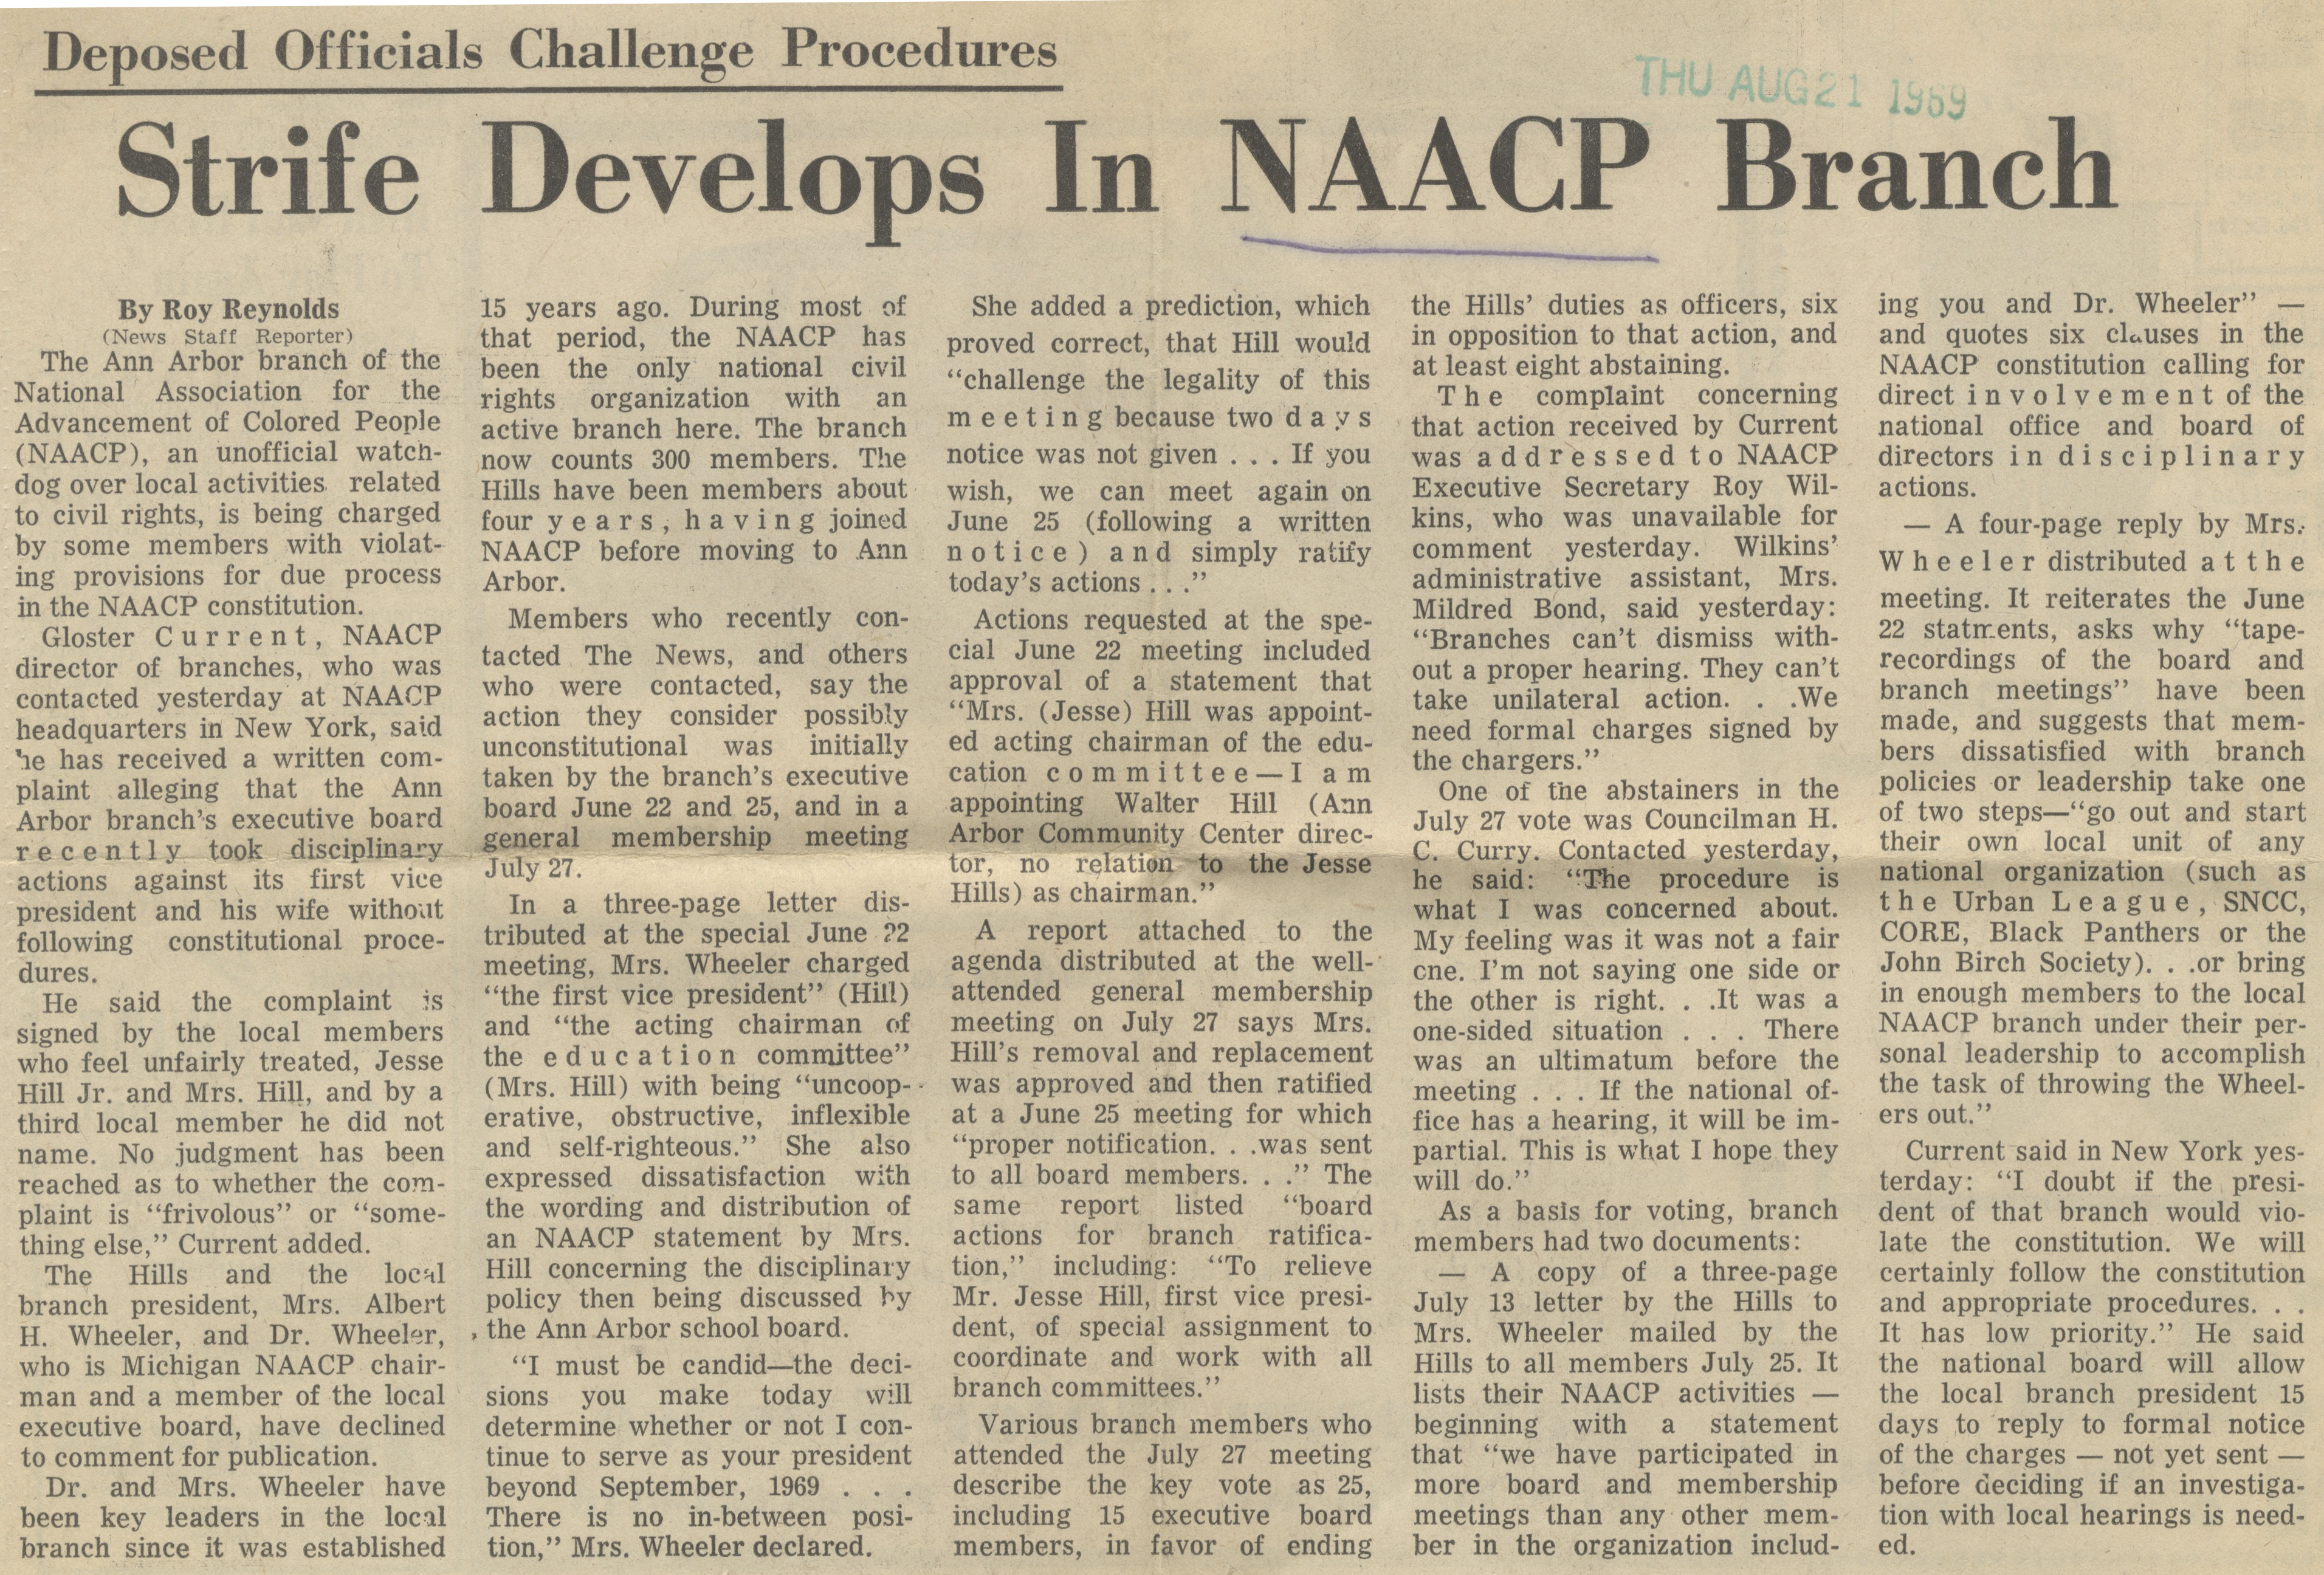 Strife Develops In NAACP Branch image